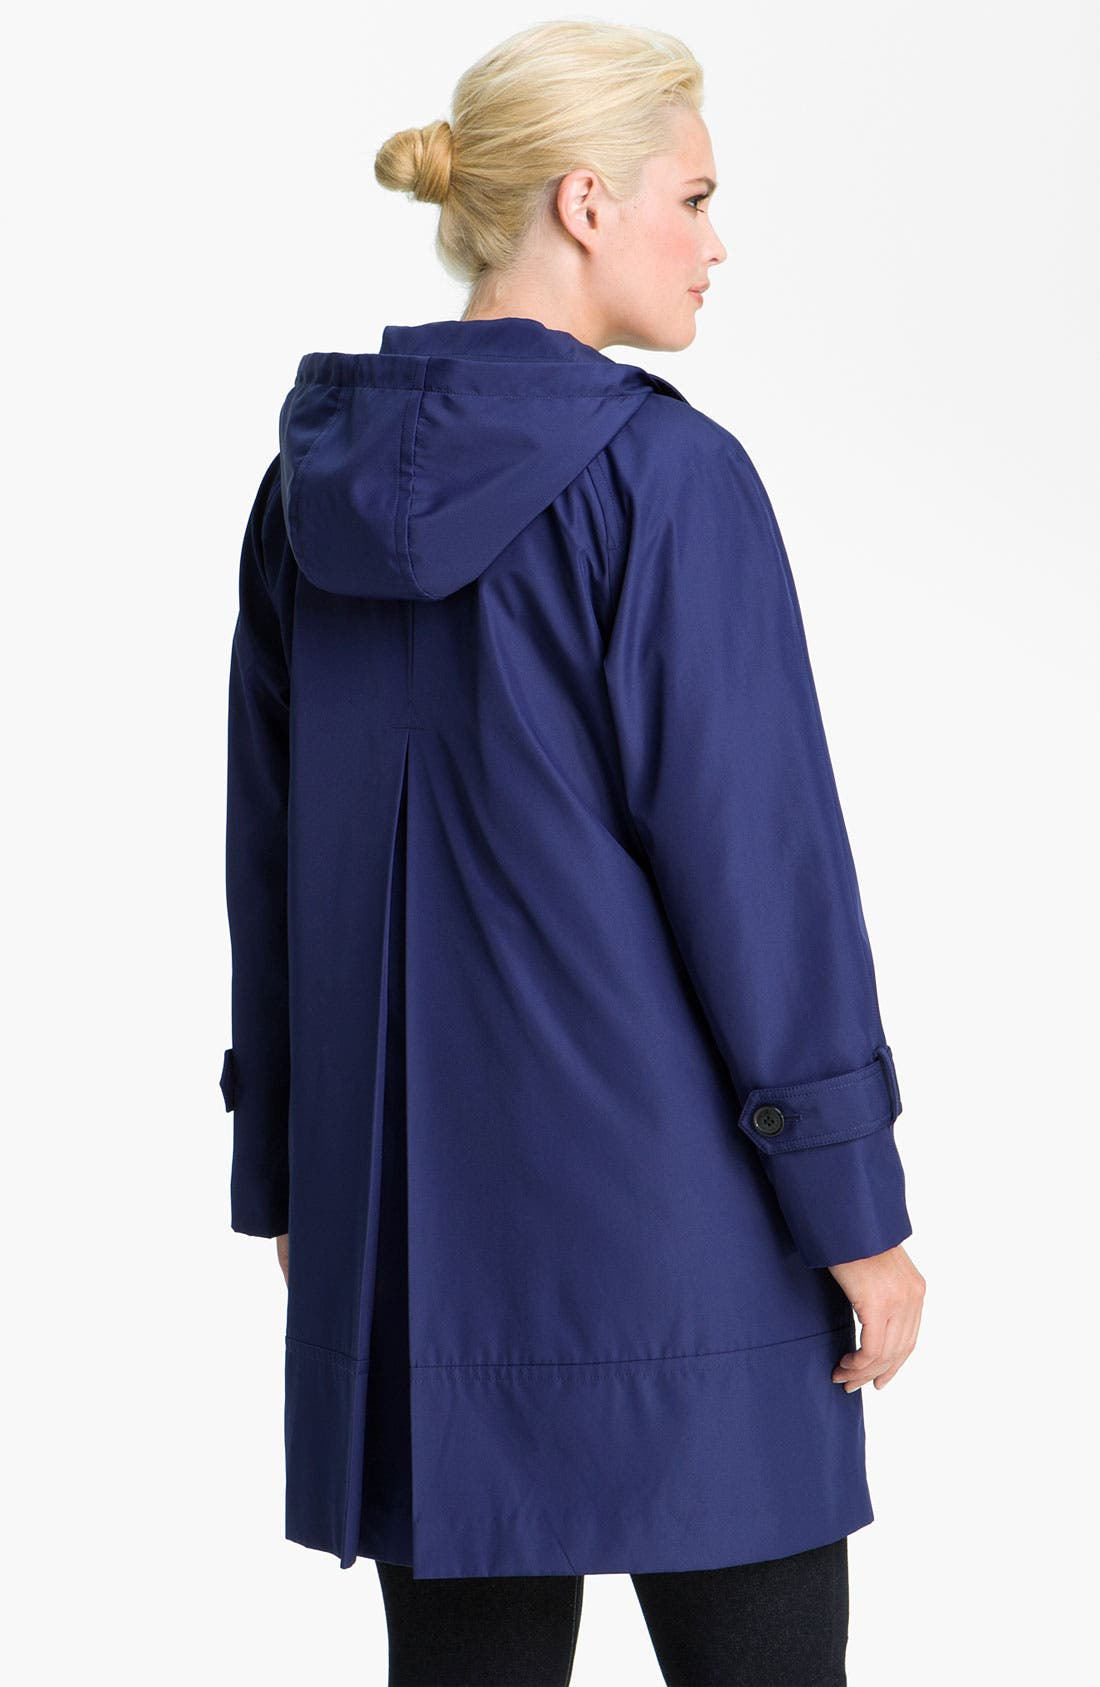 Alternate Image 2  - Marc New York by Andrew Marc 'Caroll' Raincoat with Detachable Liner (Plus)